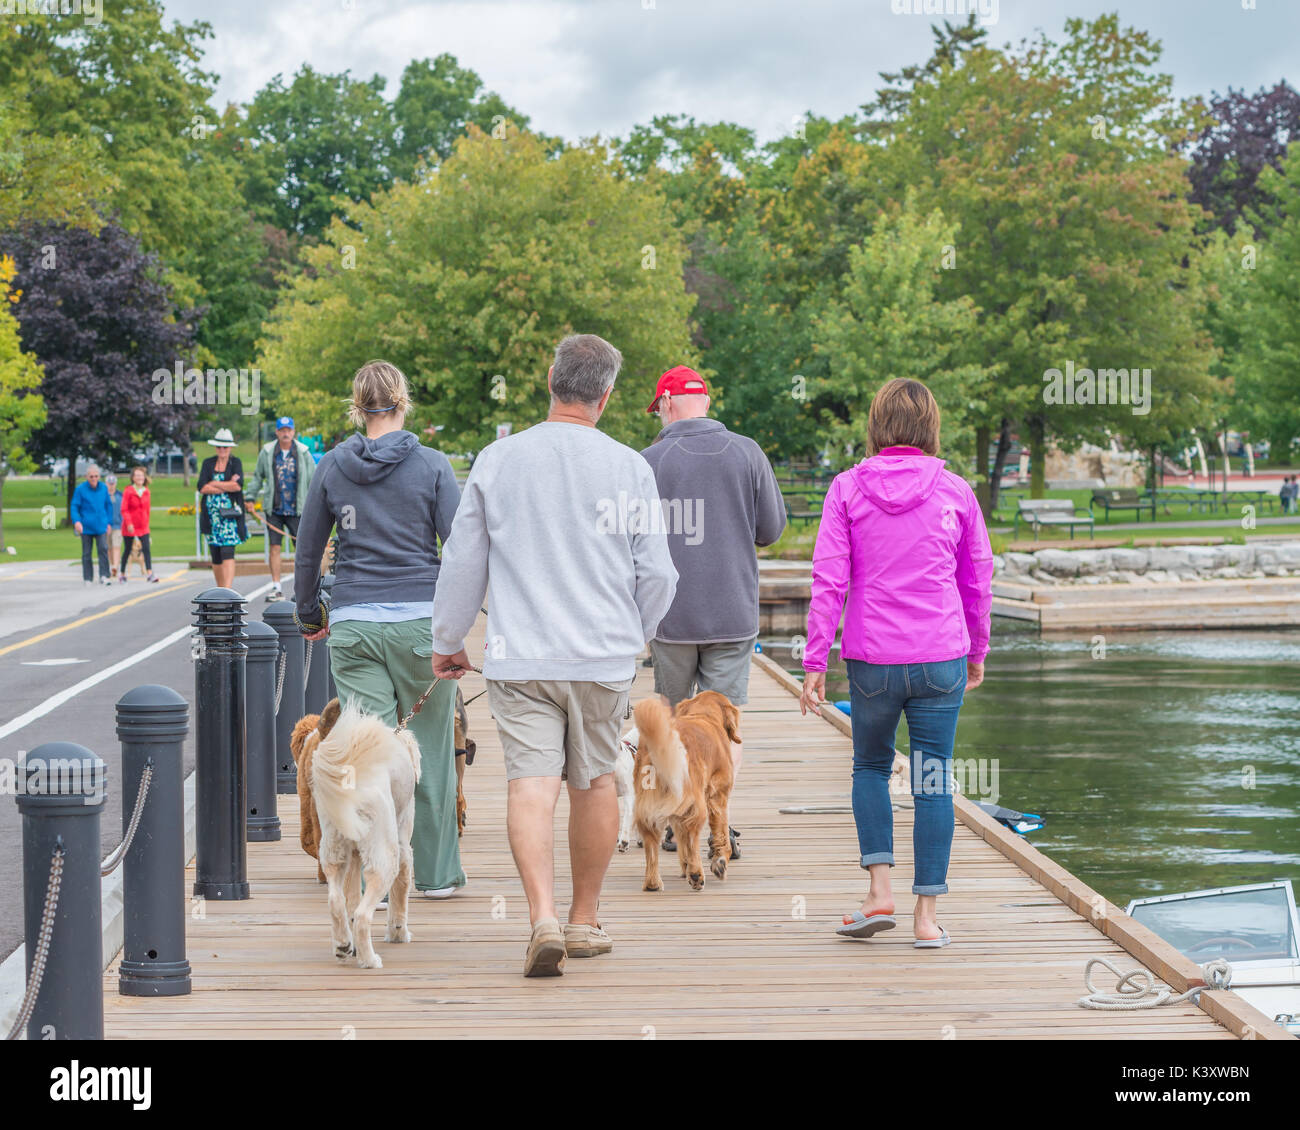 People walking their dogs along the Couchiching Park boardwalk in Orillia Ontario Canada. - Stock Image